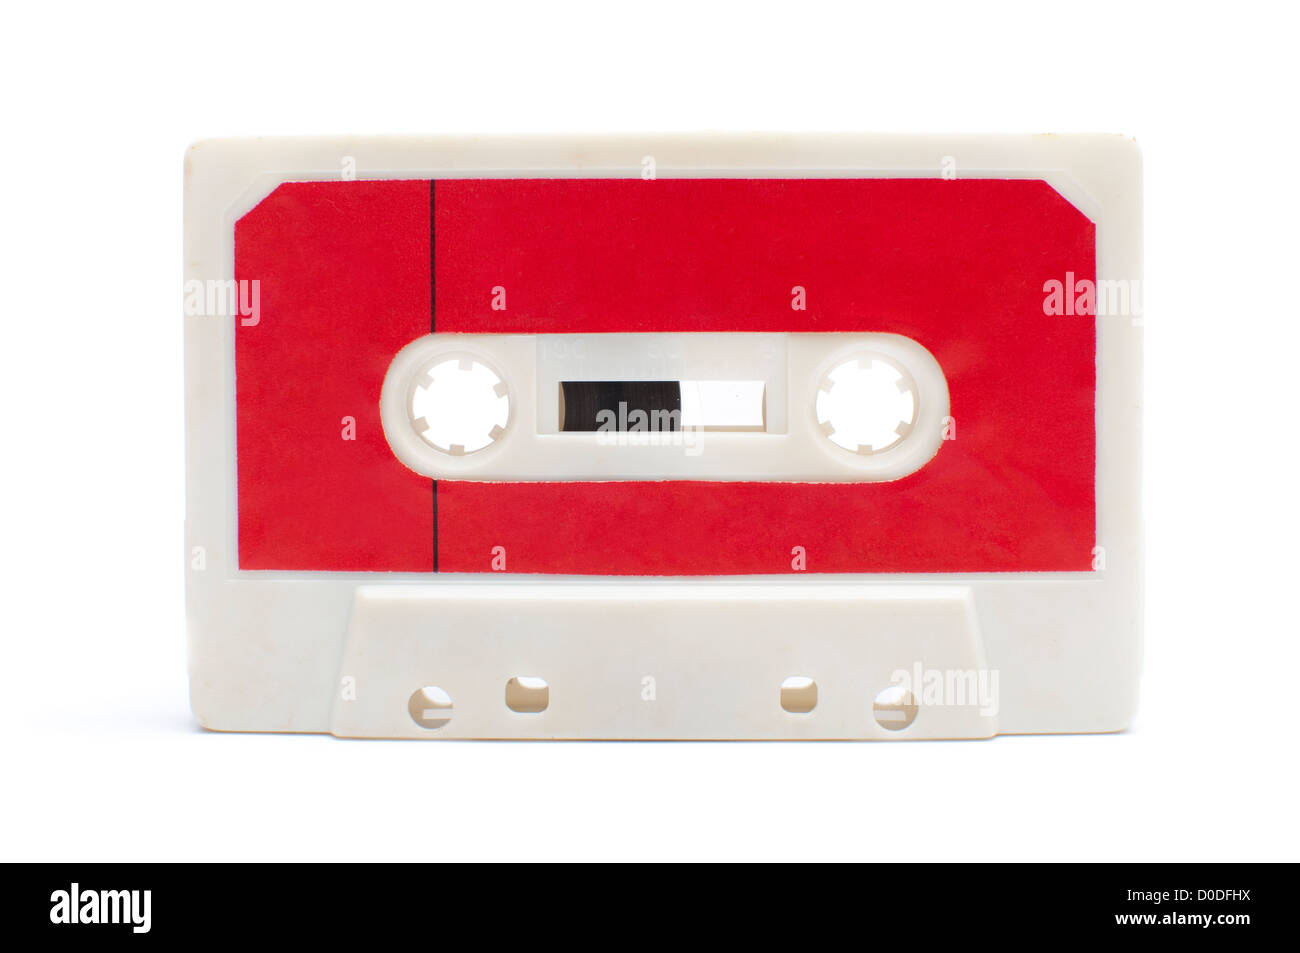 cassette tape isolated on white background - Stock Image